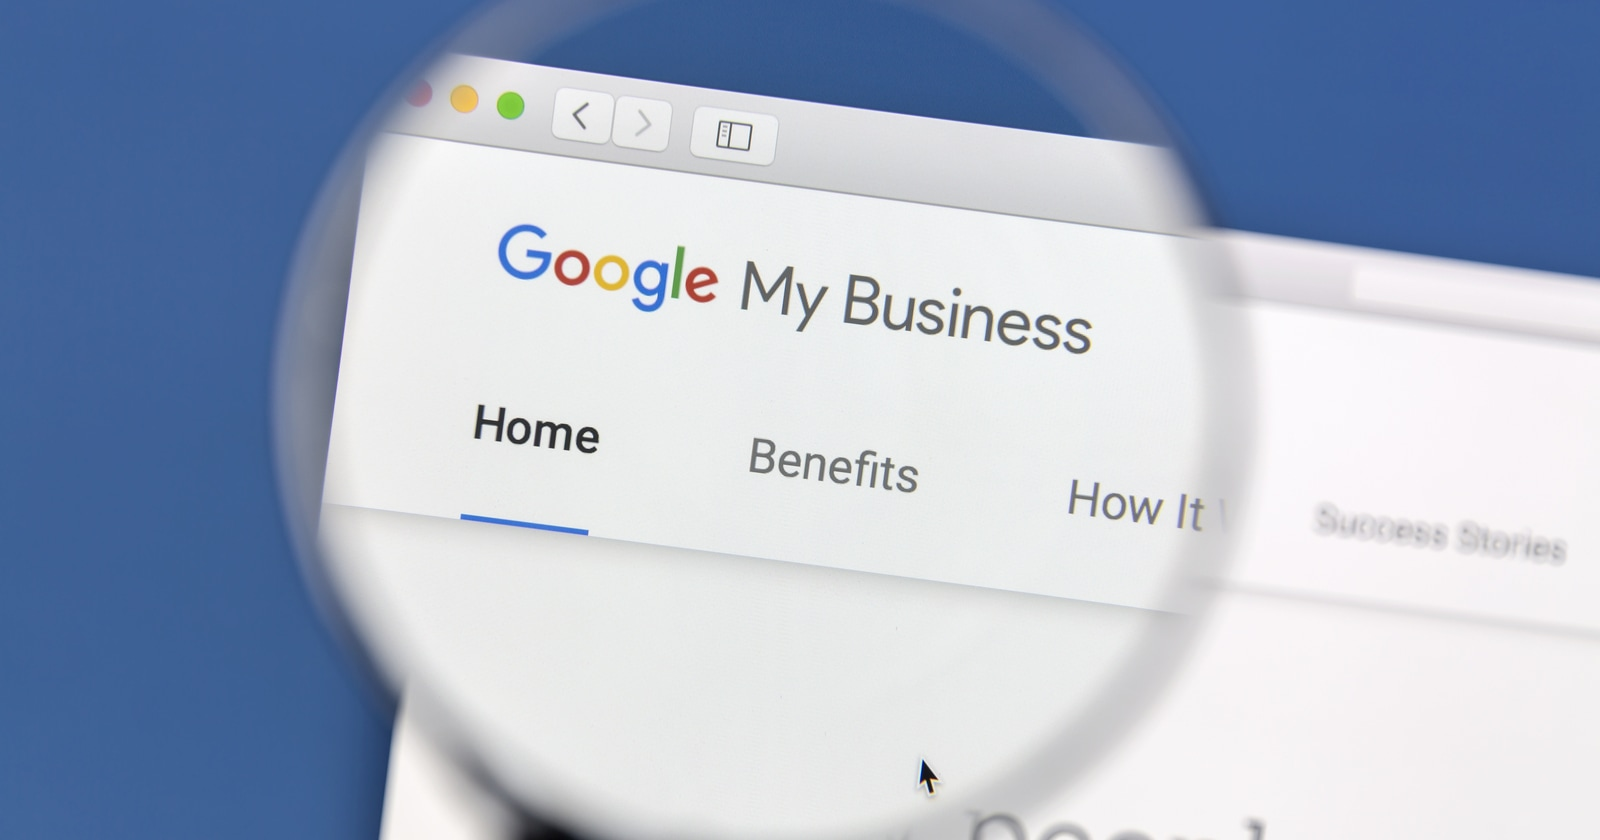 https://www.searchenginejournal.com/google-releases-website-builder-small-businesses/202272/